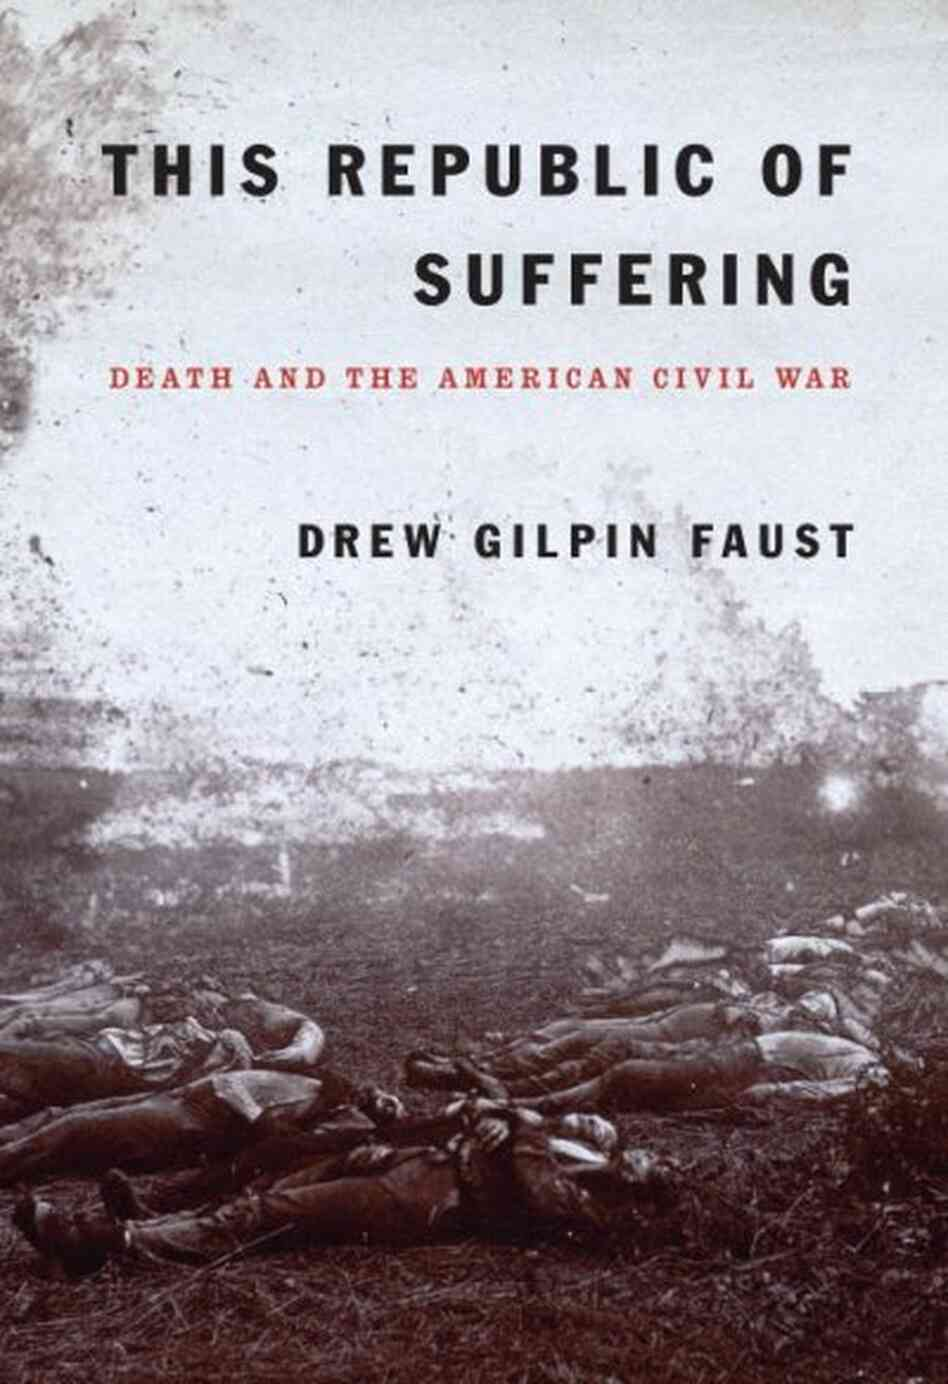 essays on this republic of suffering More recently, the essays in apocalypse and the millennium in the american civil war era (2013), edited by ben wright and zachary dresser suggest that faust ( this republic of suffering: death and the american civil war, 2008) and mark a schantz (awaiting the heavenly country: the civil war and america's culture.